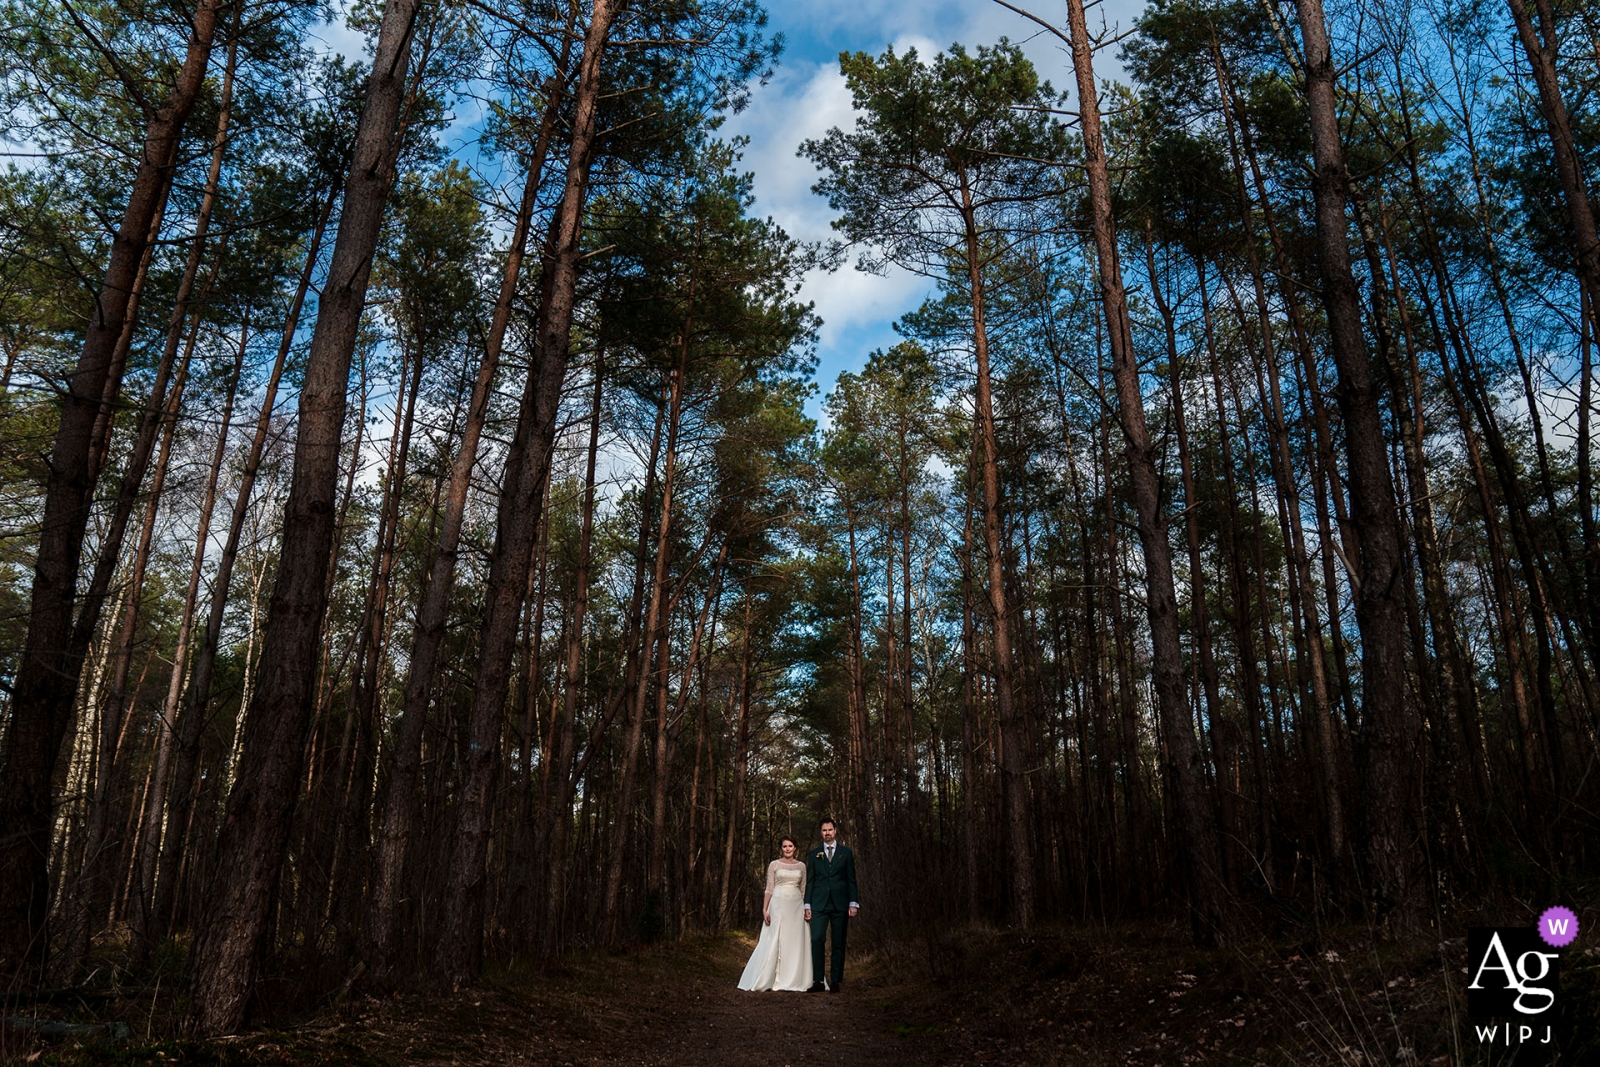 Beaufort Huis Austerlitz wedding photography   The bride and groom are standing in a beautiful forest with a blue sky.